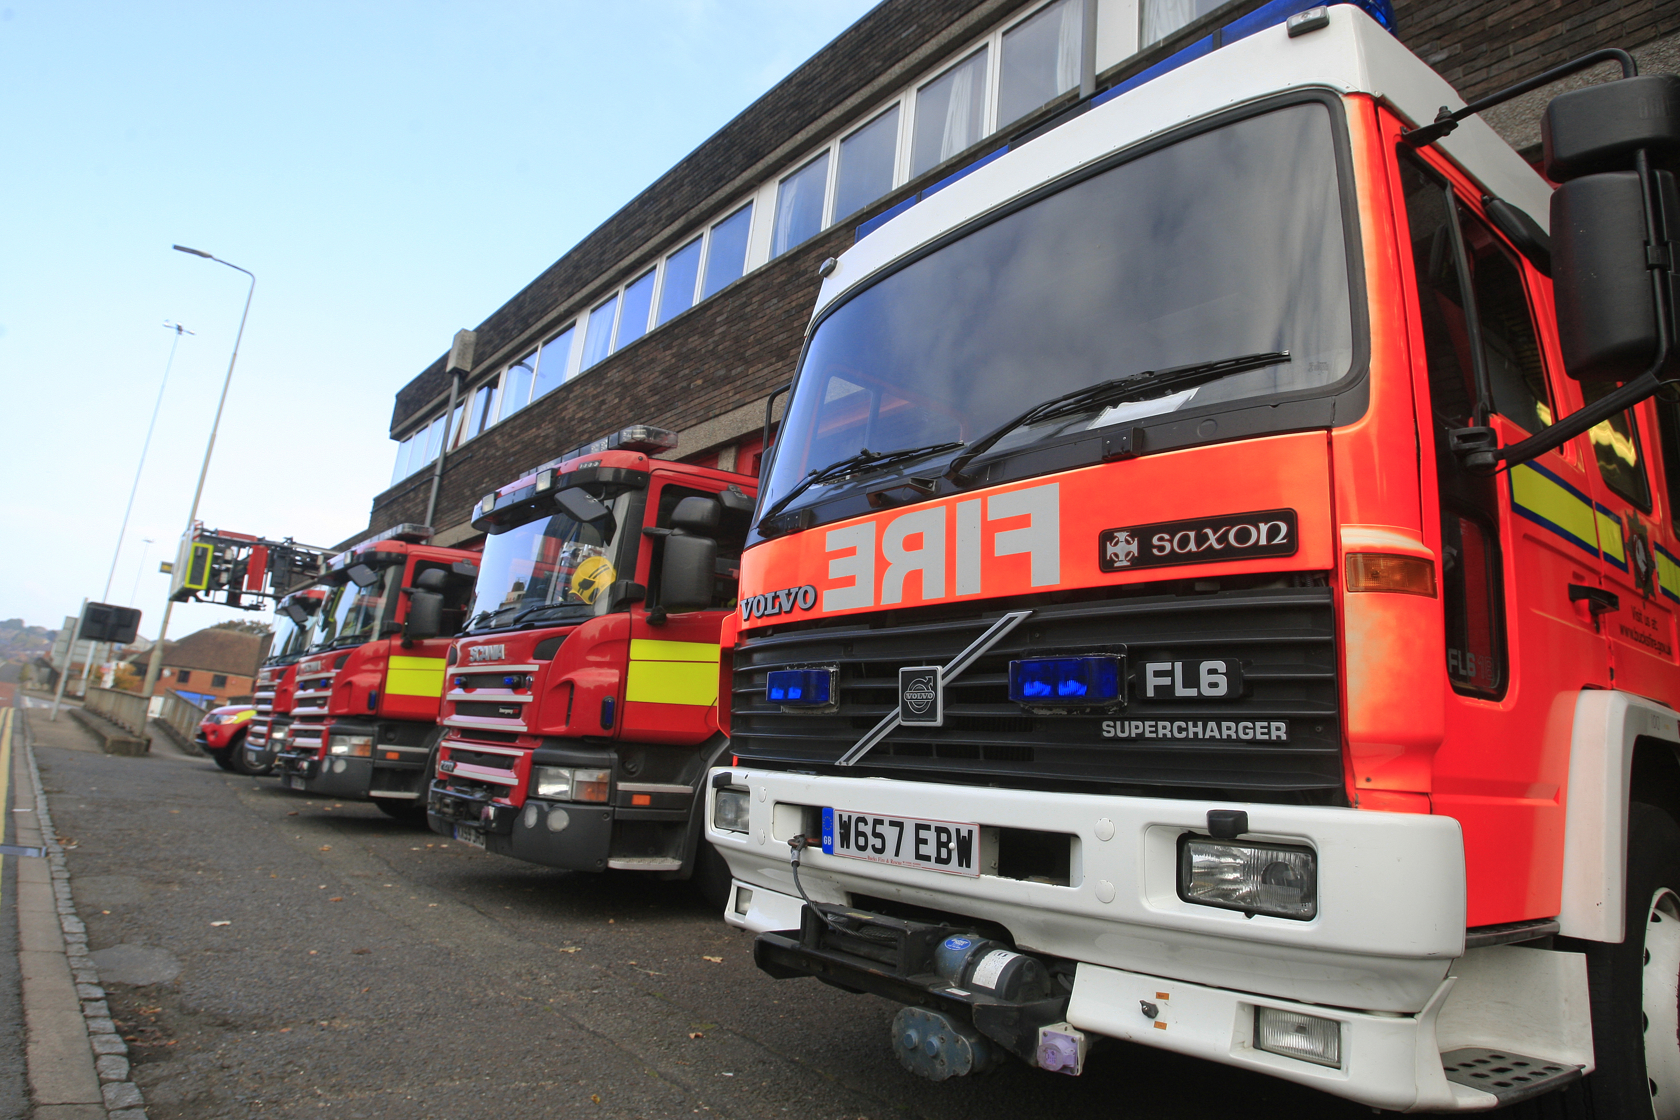 Firefighters rescue injured drivers from crashes around south Bucks